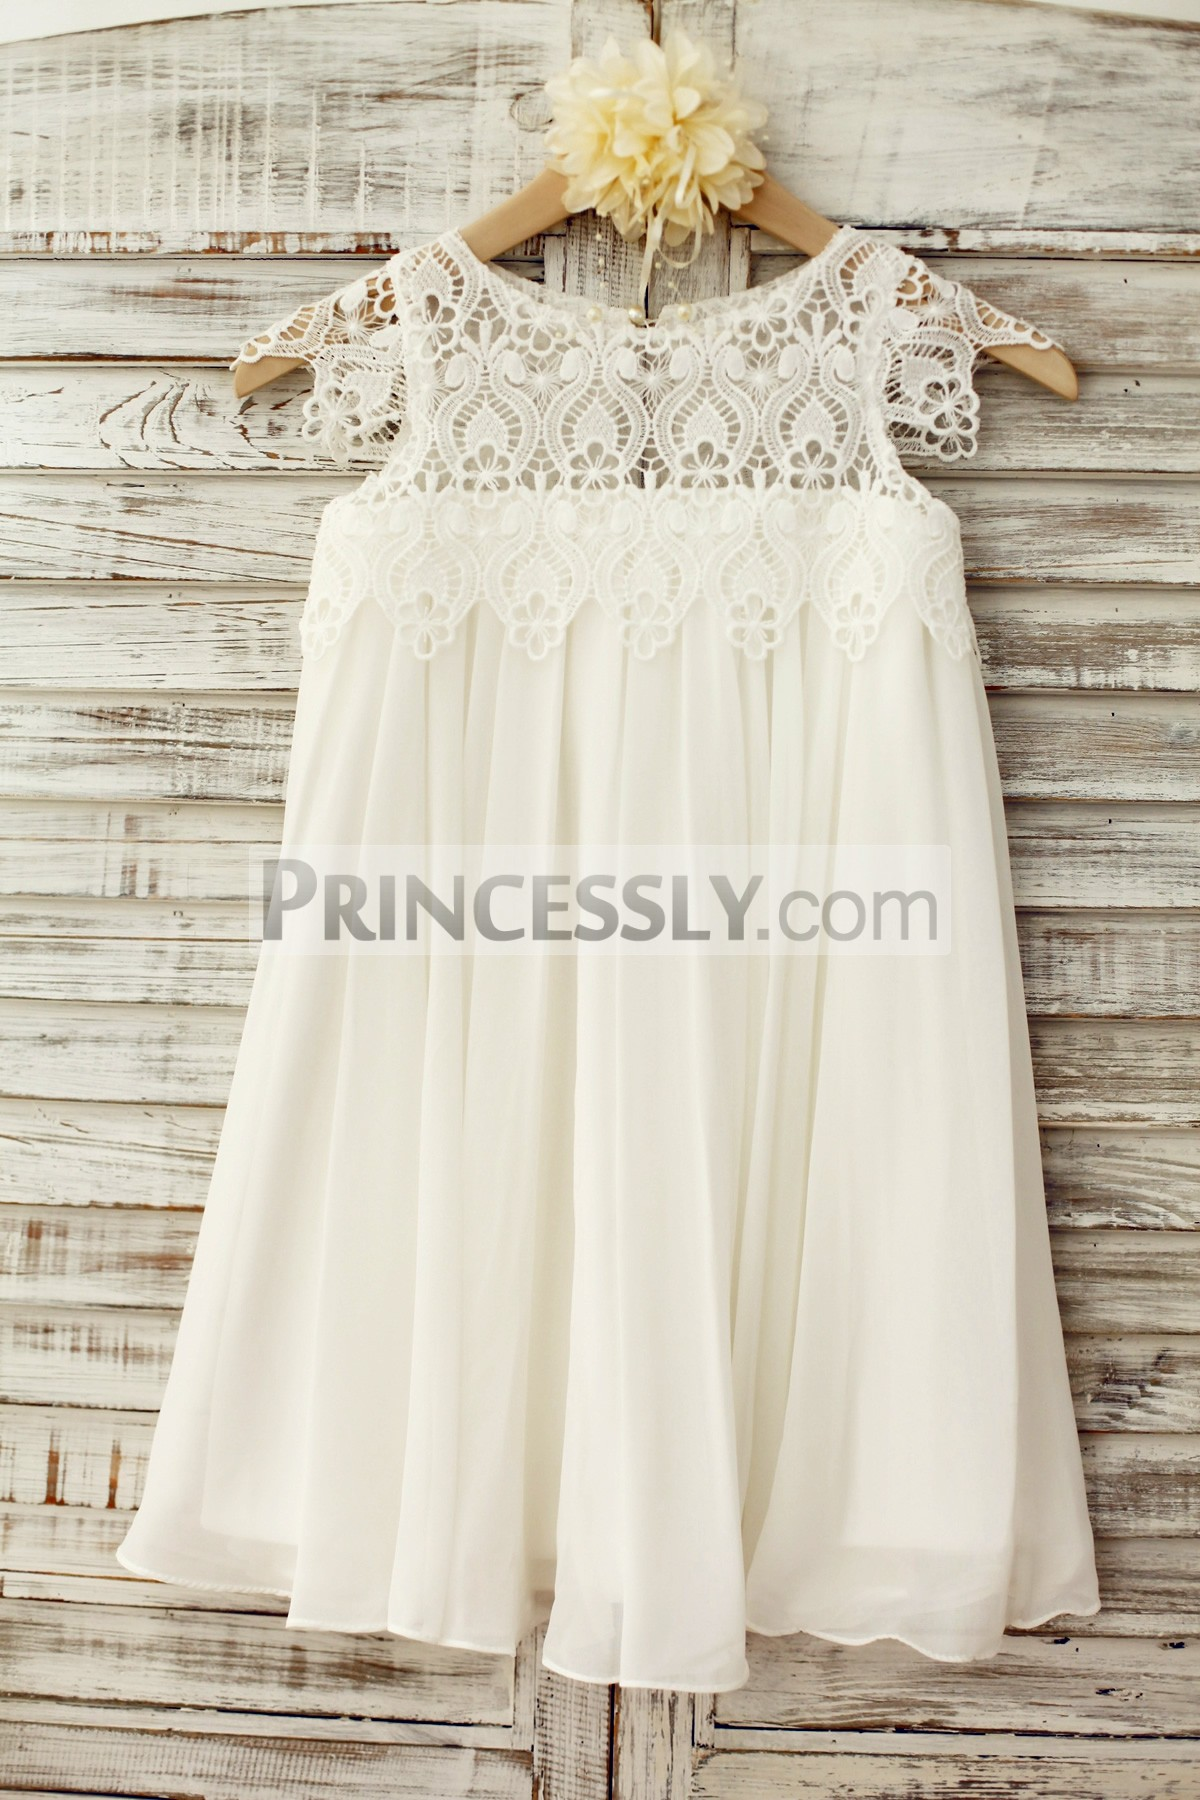 Boho Beach Lace Cap Sleeves Ivory Chiffon Flower Girl Dress | Avivaly